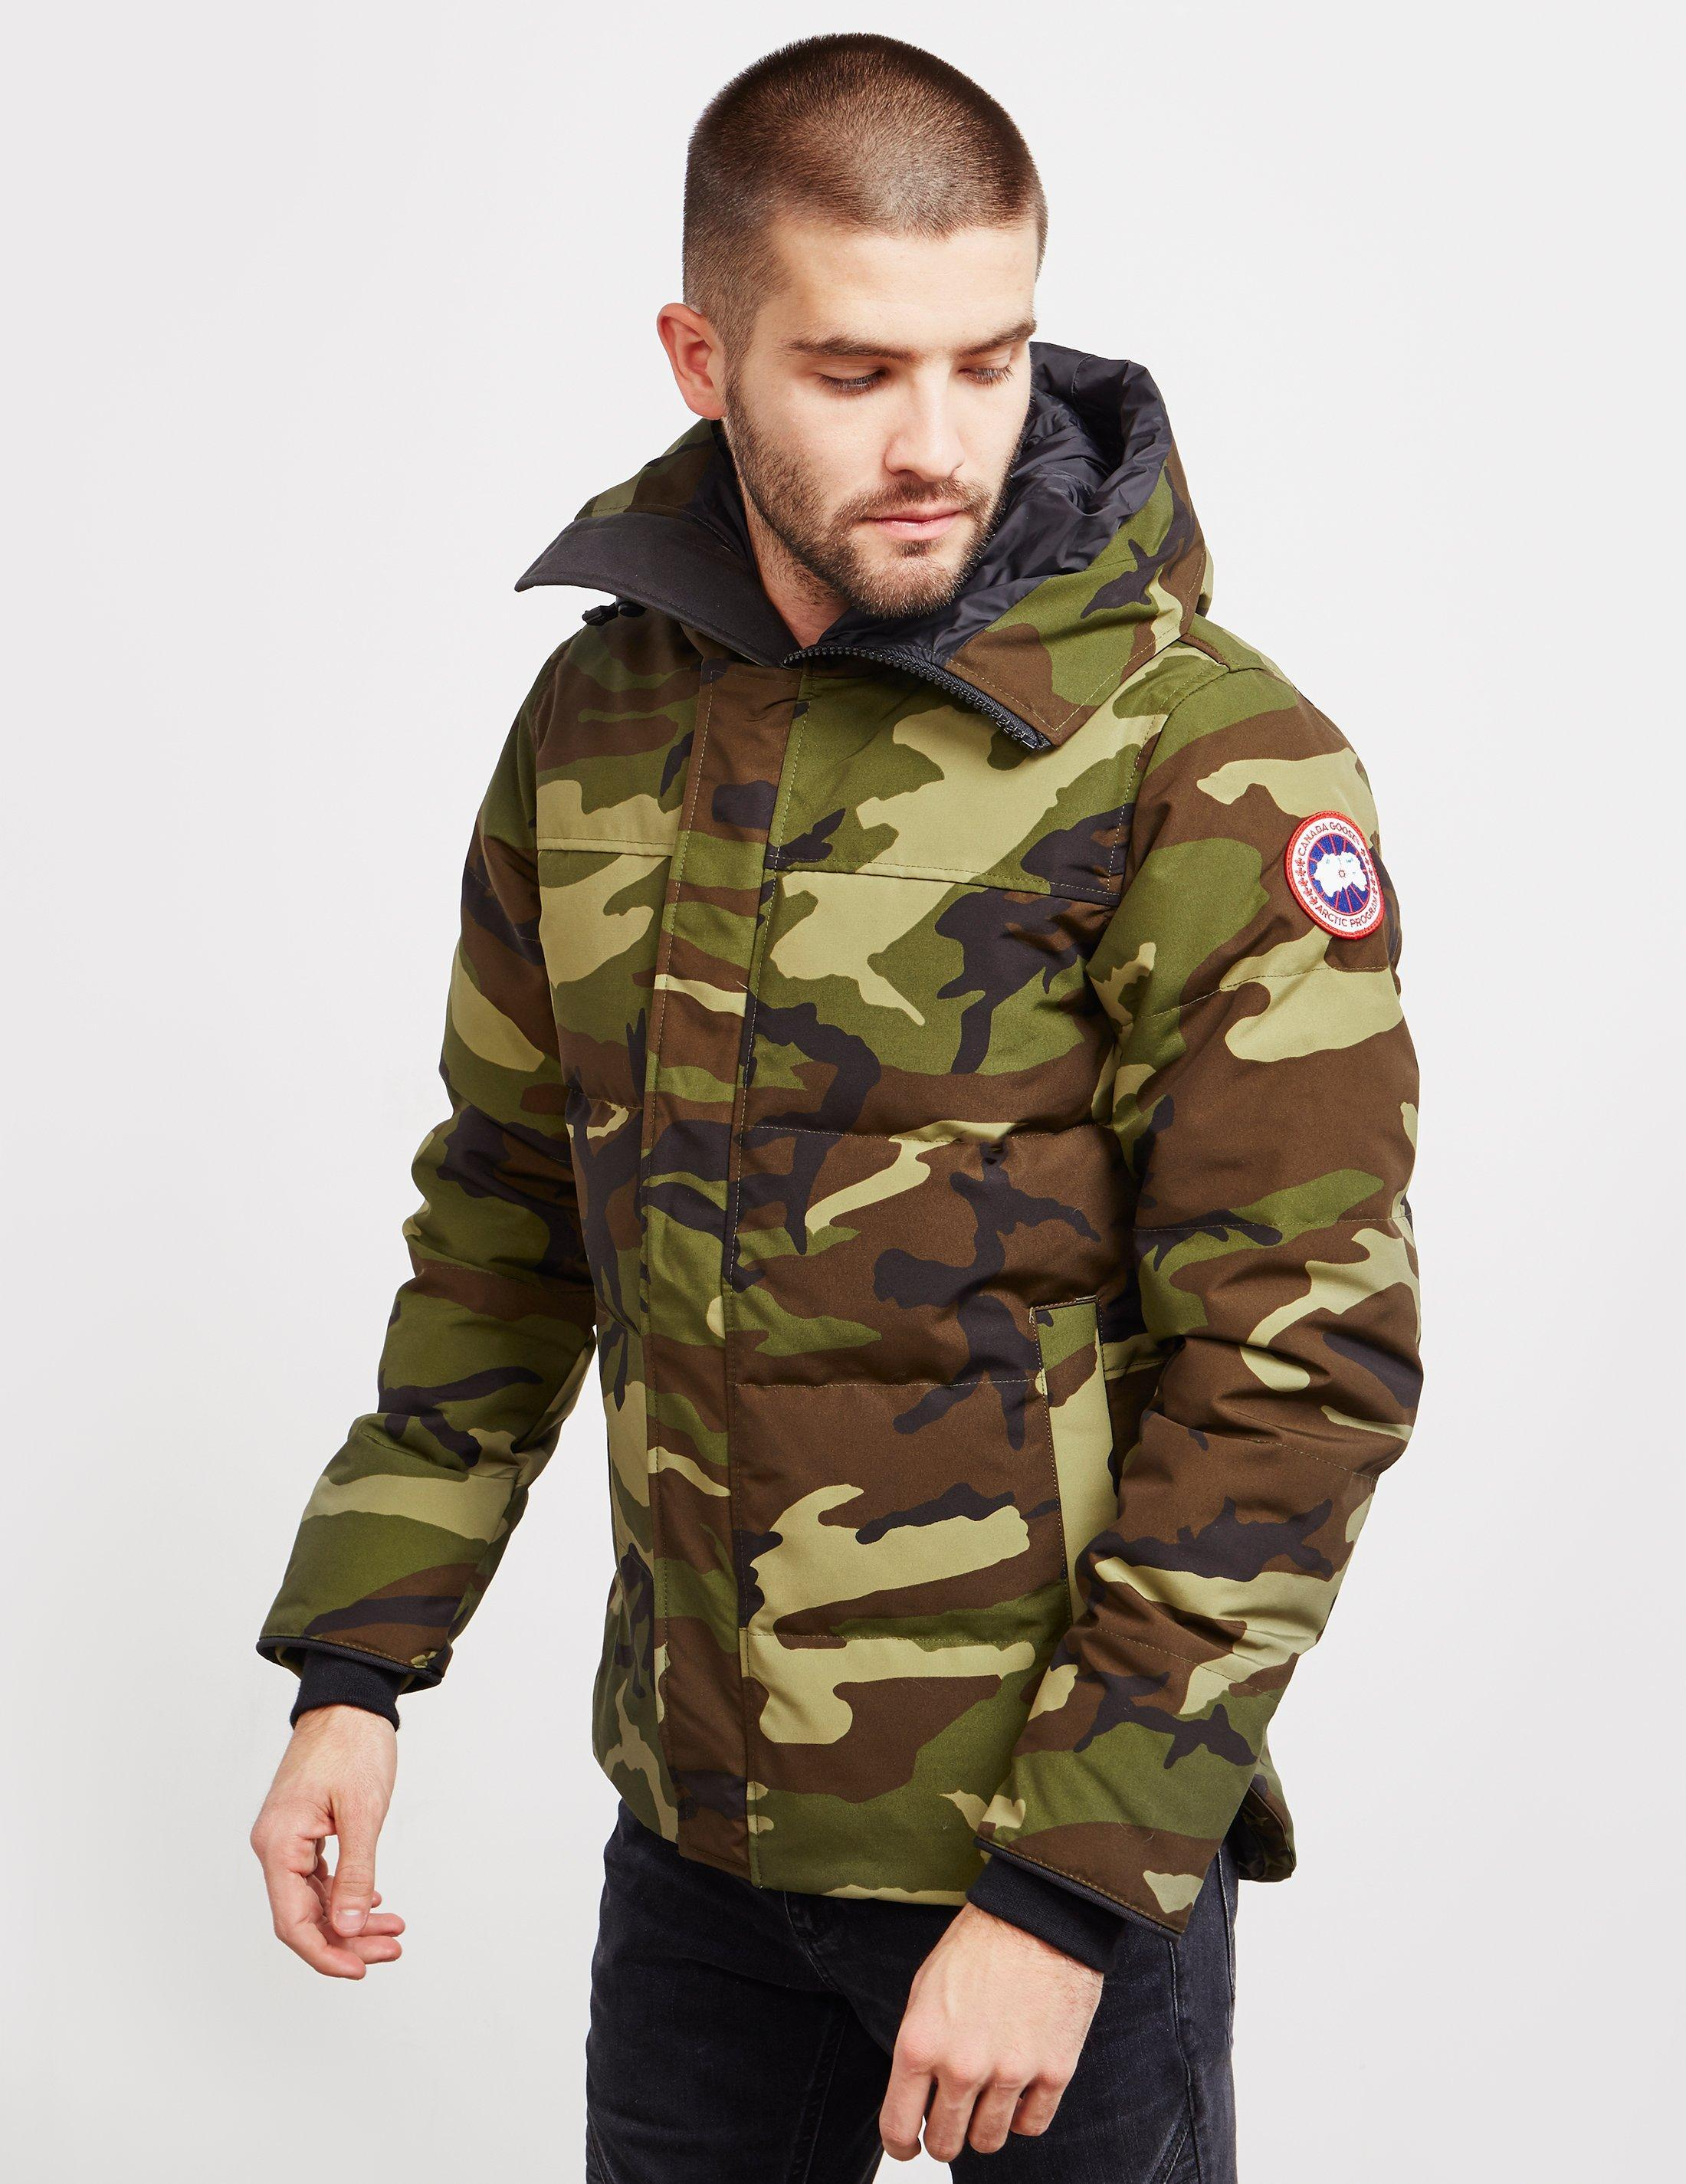 ca1ed76a7588 Canada Goose Macmillan Padded Parka Jacket Green in Green for Men - Lyst